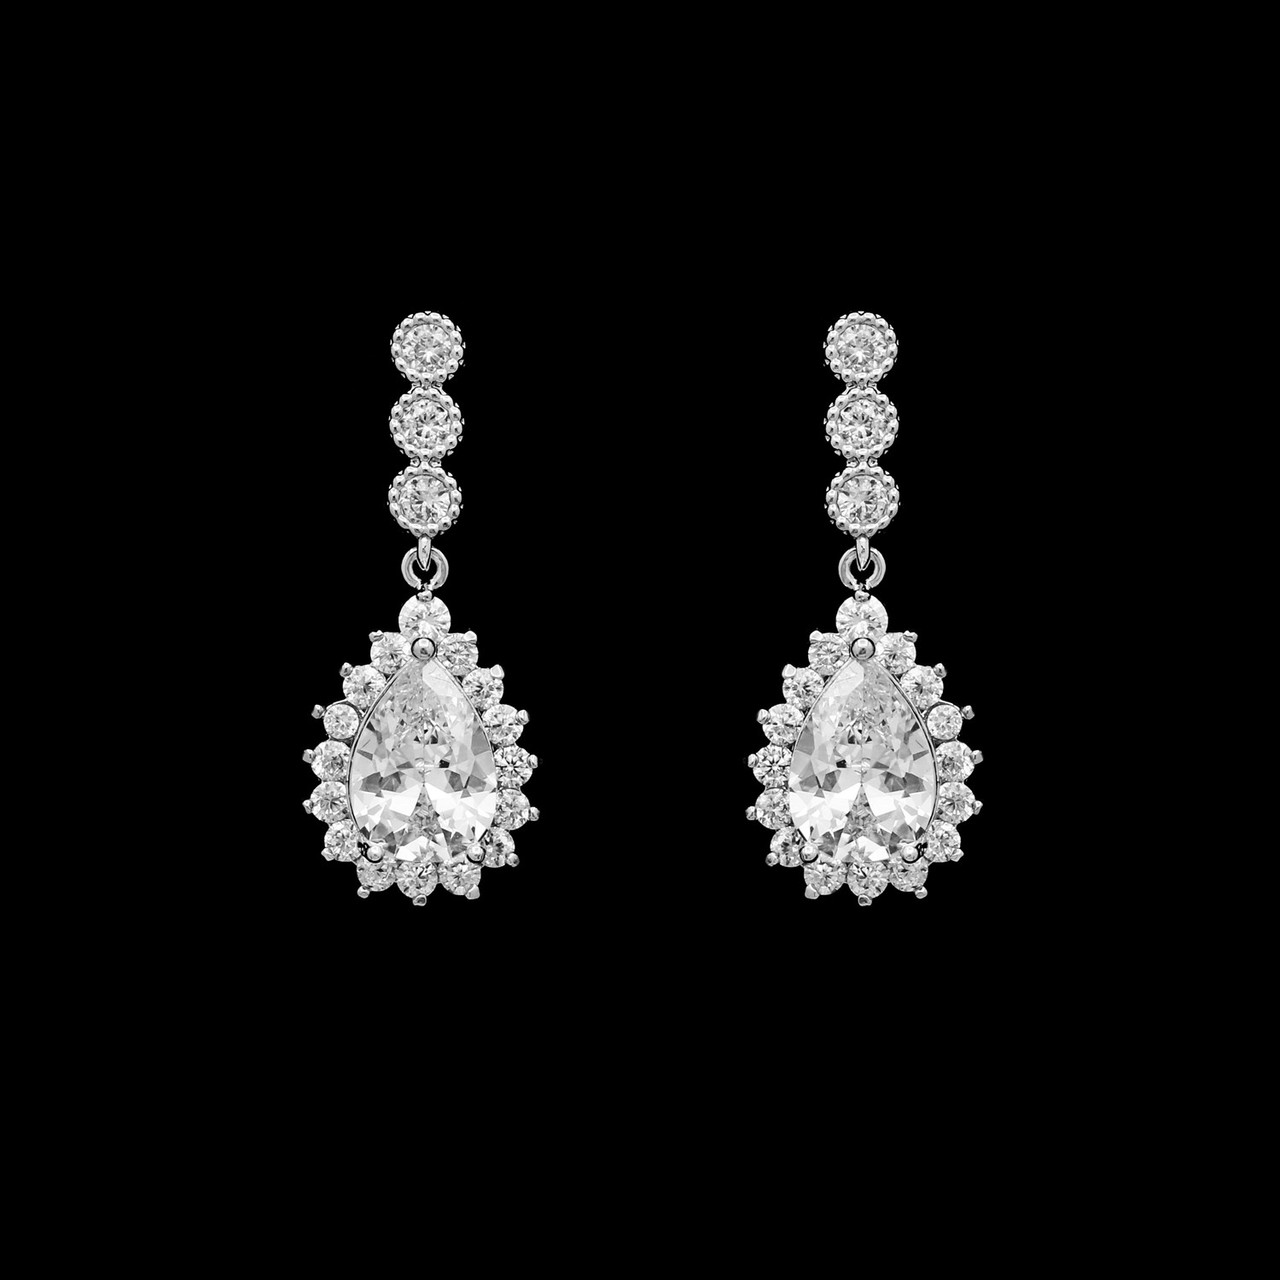 Formal Cubic Zirconia Earrings for Bridesmaids and Brides - #0131